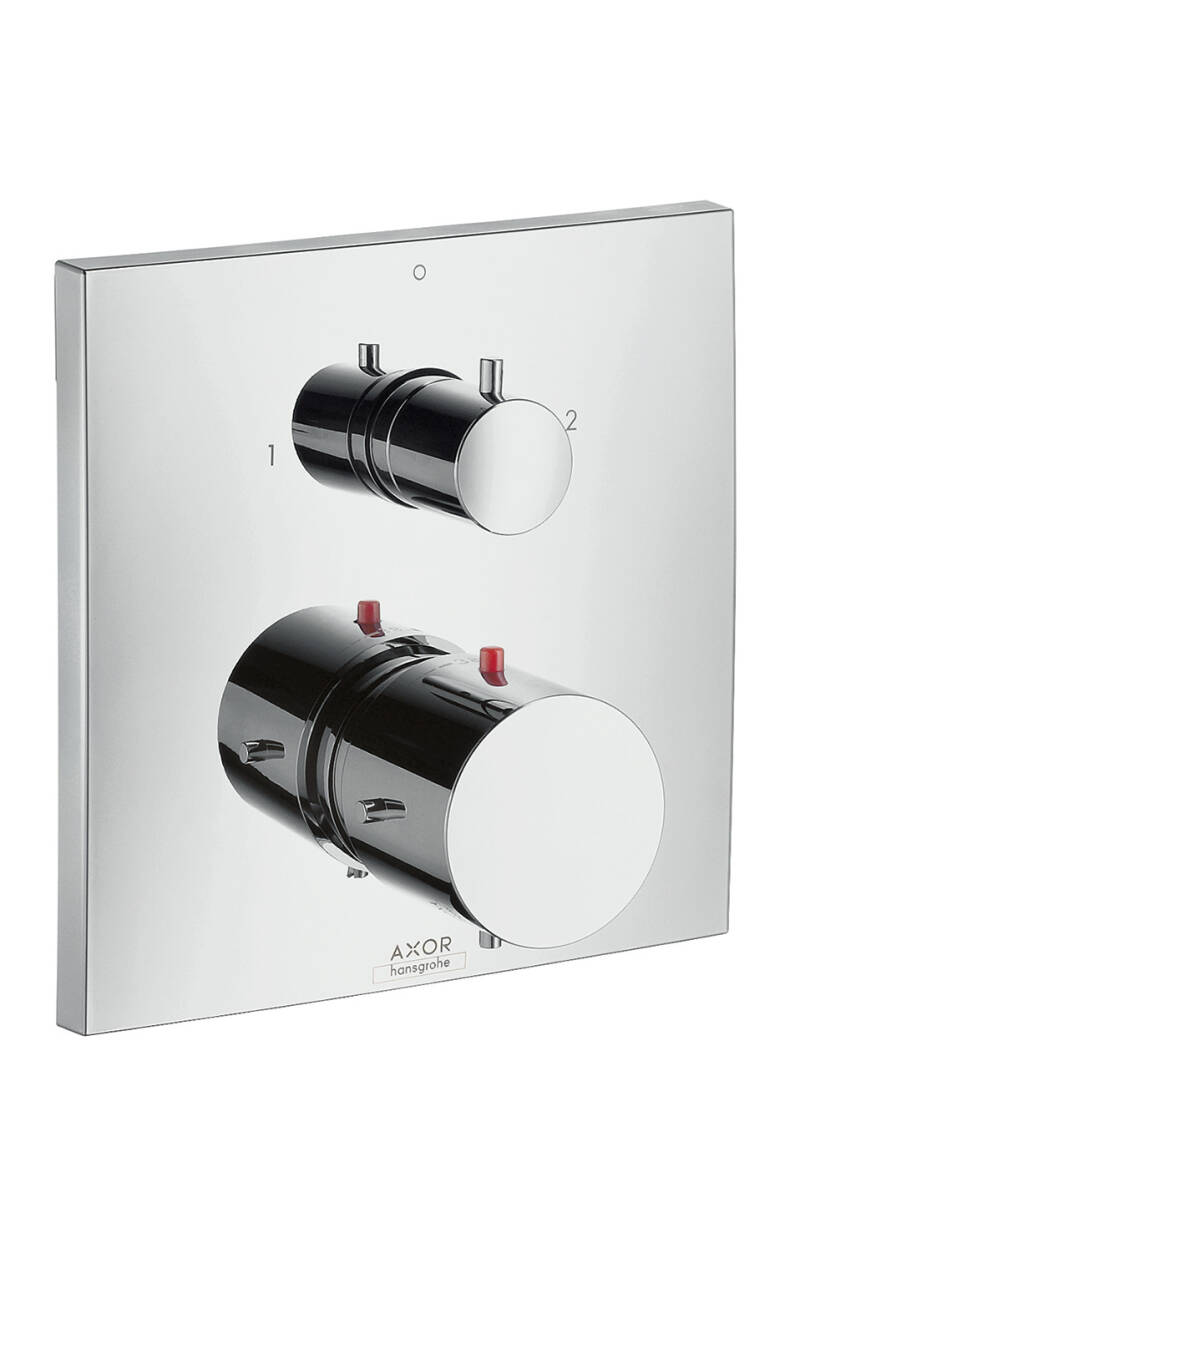 Thermostatic mixer for concealed installation with shut-off/ diverter valve, Chrome, 10726000